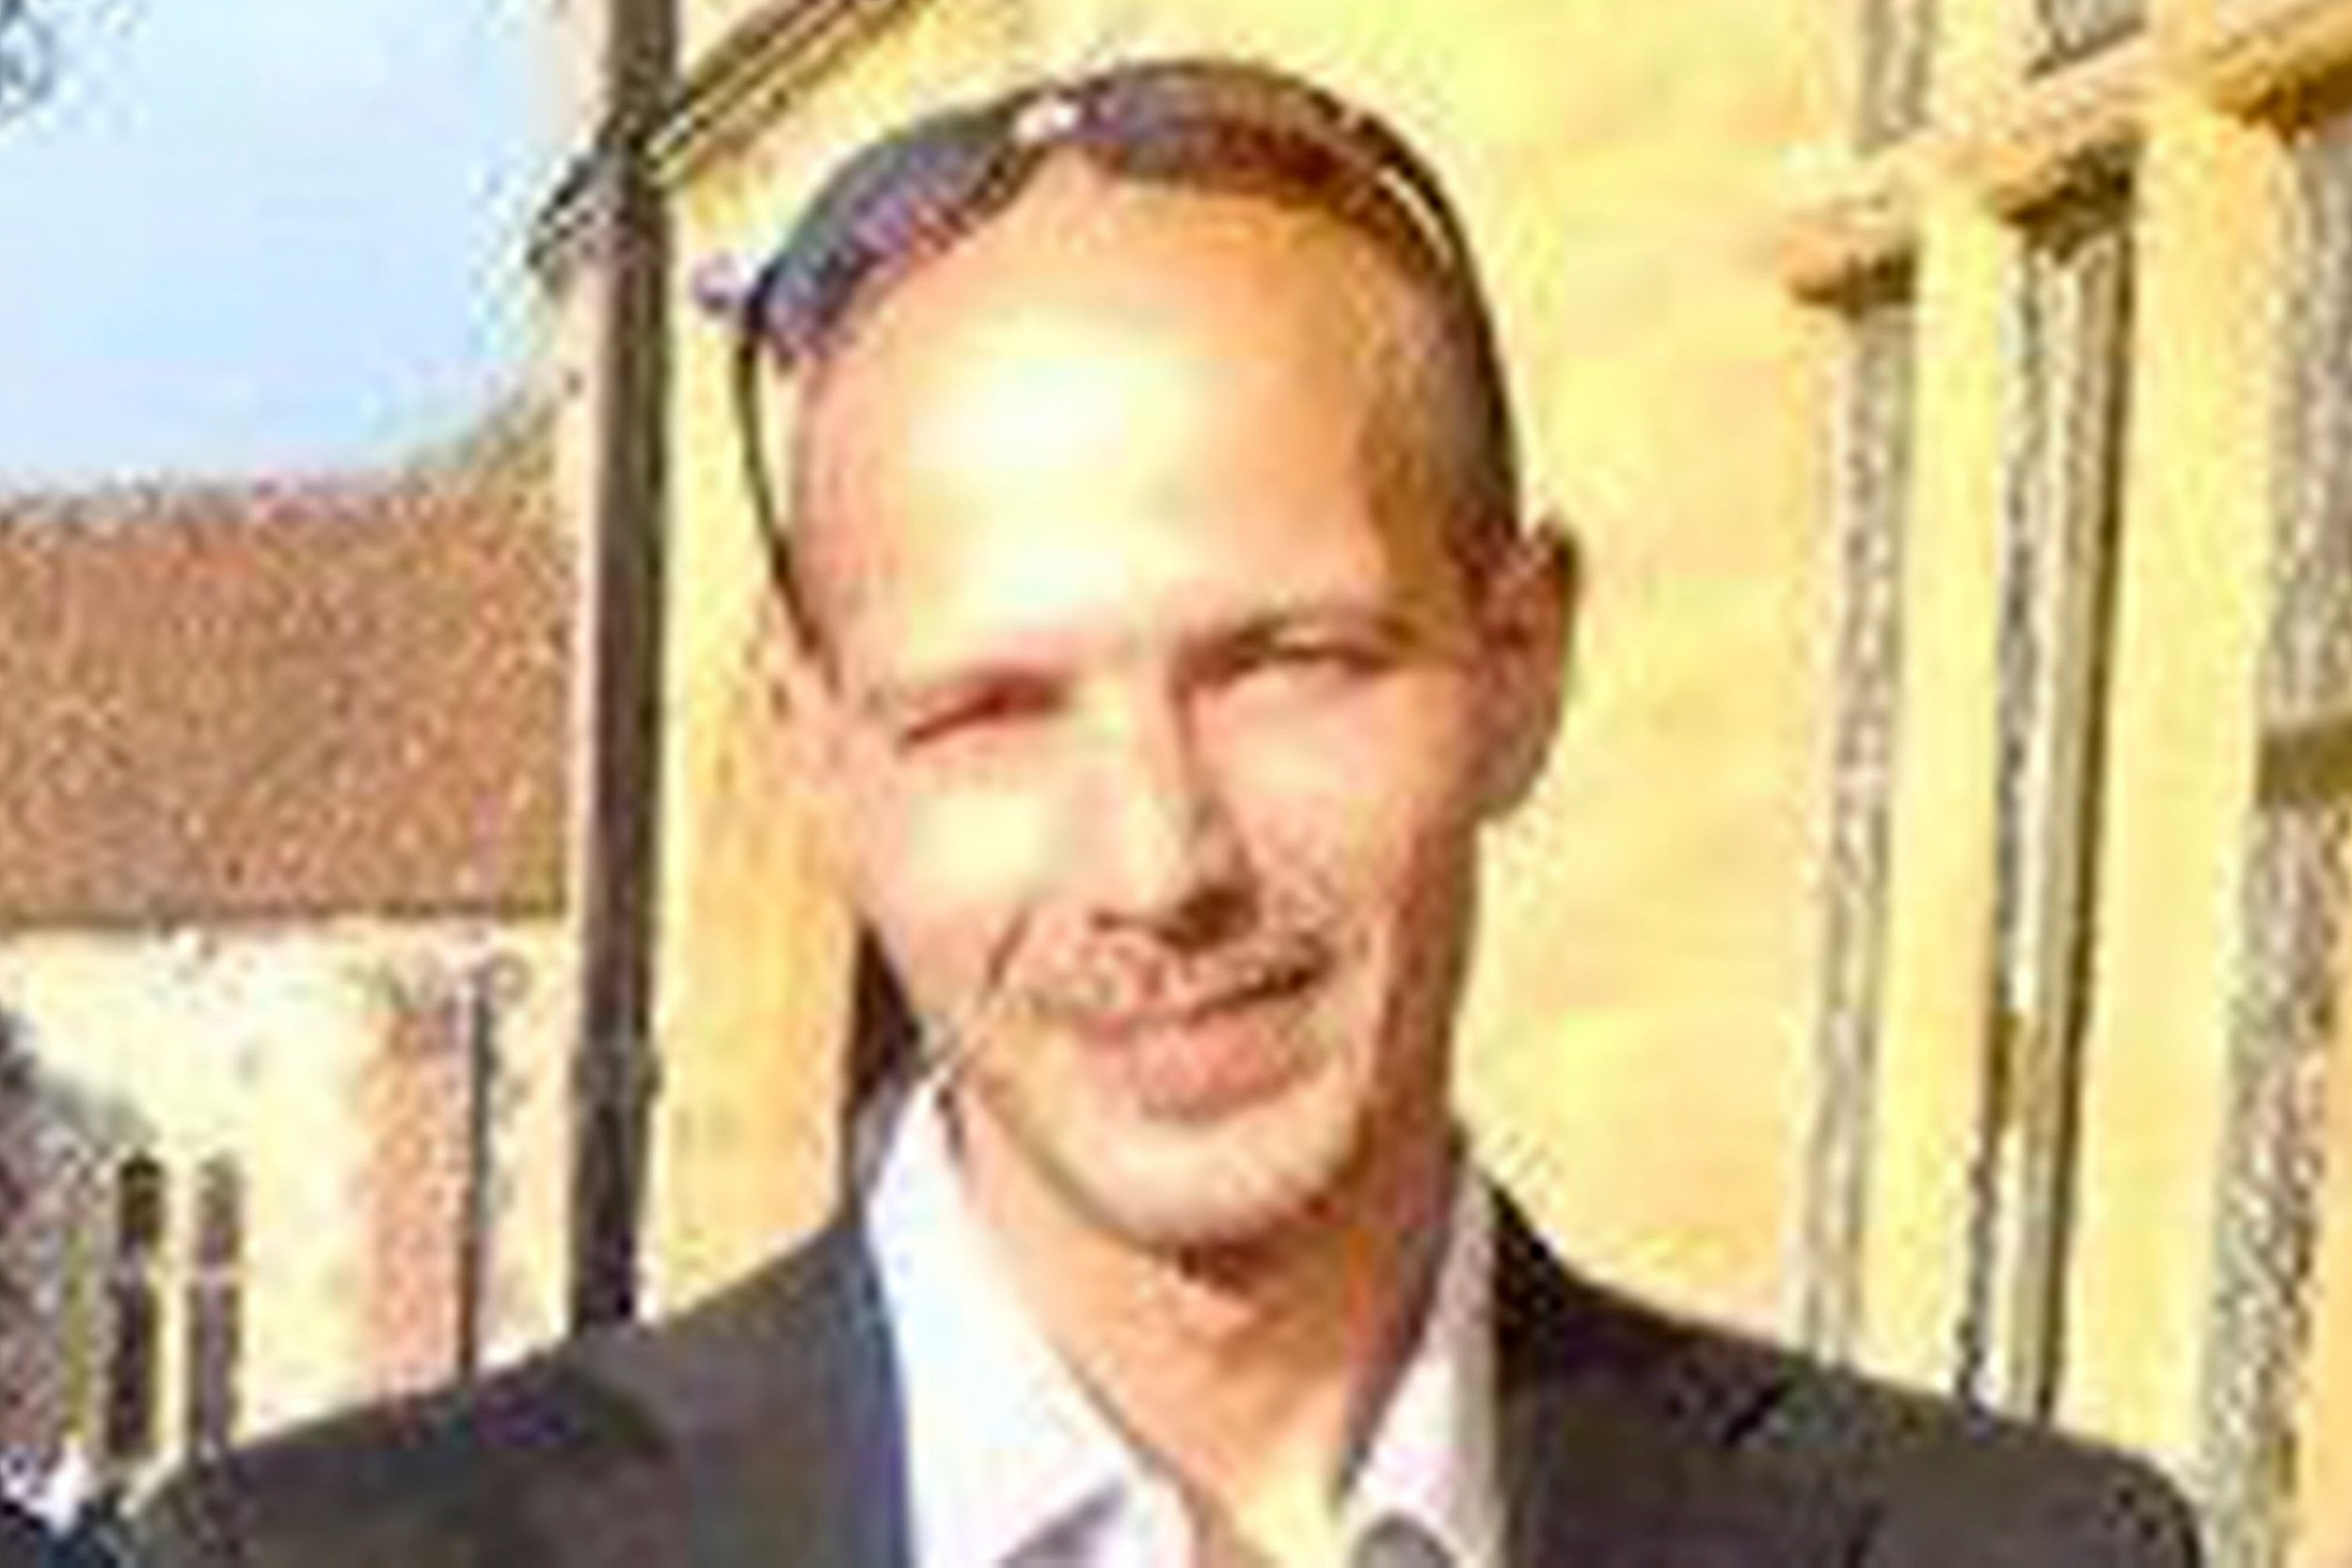 "An undated picture taken from the facebook page of Charles Rowley on July 9, 2018 shows Charles Rowley posing for a photograph in an unknown location British police launched a murder inquiry Sunday after a woman died following exposure to the nerve agent Novichok in southwest England, four months after the same type of chemical was used against a former Russian spy in an attack blamed on Moscow. Prime Minister Theresa May said she was ""appalled and shocked"" by the death of Dawn Sturgess, a 44-year-old mother of three, and offered her condolences to the family. Sturgess and a man named locally as Charlie Rowley, 45, fell ill last weekend in Amesbury, near the town of Salisbury where former double agent Sergei Skripal and his daughter Yulia were attacked with Novichok in March and have since recovered. / AFP PHOTO / FACEBOOK PAGE OF CHARLES ROWLEY / - / RESTRICTED TO EDITORIAL USE - MANDATORY CREDIT ""AFP PHOTO / FACEBOOK PAGE OF CHARLES ROWLEY "" - NO MARKETING NO ADVERTISING CAMPAIGNS - RESTRICTED TO SUBSCRIPTION USE - NO ARCHIVES - NO SALES - DISTRIBUTED AS A SERVICE TO CLIENTS -/AFP/Getty Images"